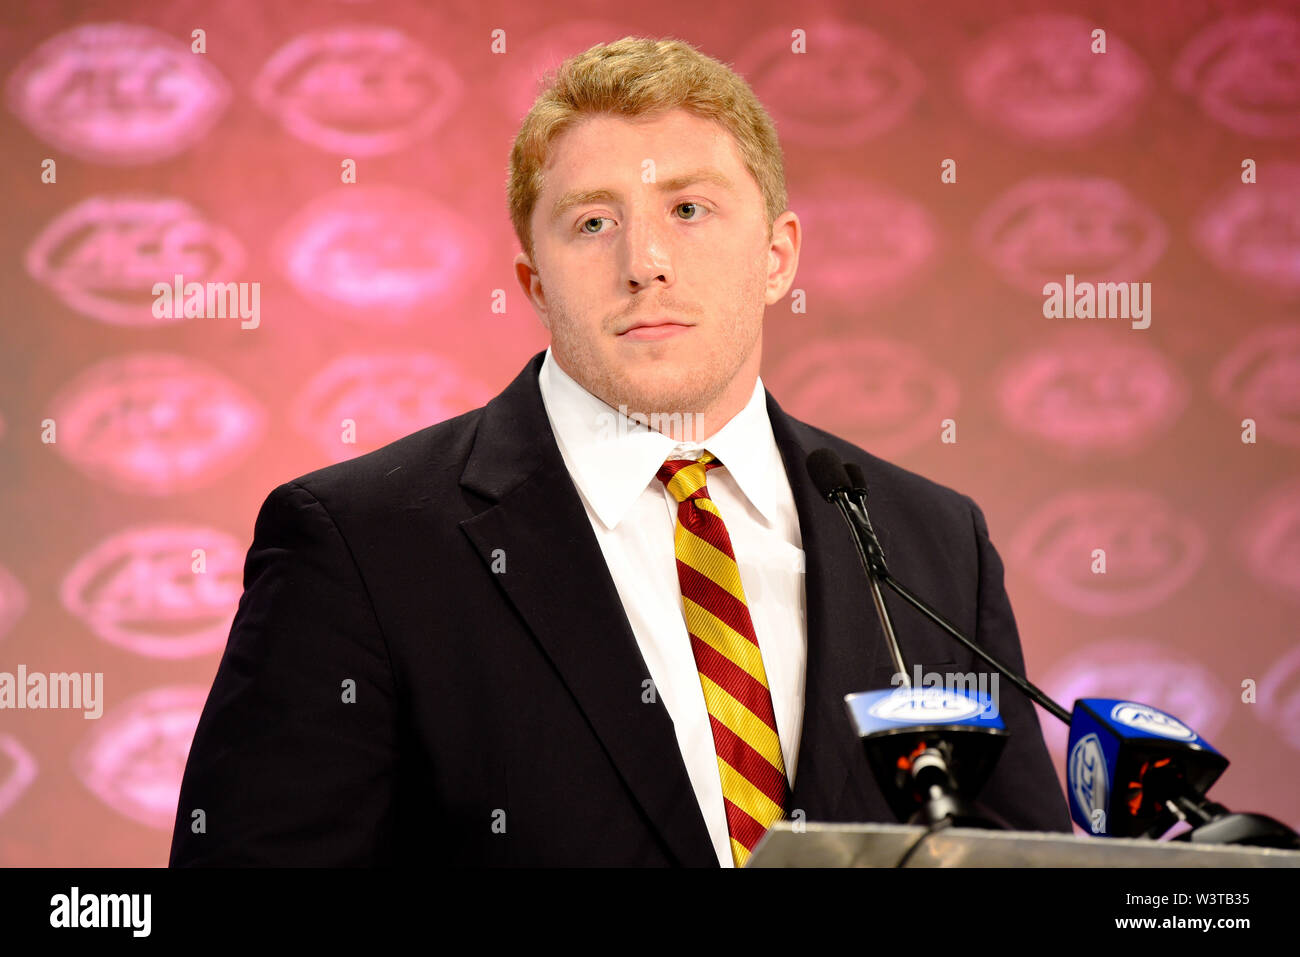 Charlotte, North Carolina, USA. 17th July, 2019. Boston College Tanner KARAFA (DT) speaking to reporters during the ACC Atlantic Division Coach/Student interviews on July 17, 2019 at the Westin Hotels & Resorts in Charlotte, N.C. Credit: Ed Clemente/ZUMA Wire/Alamy Live News - Stock Image